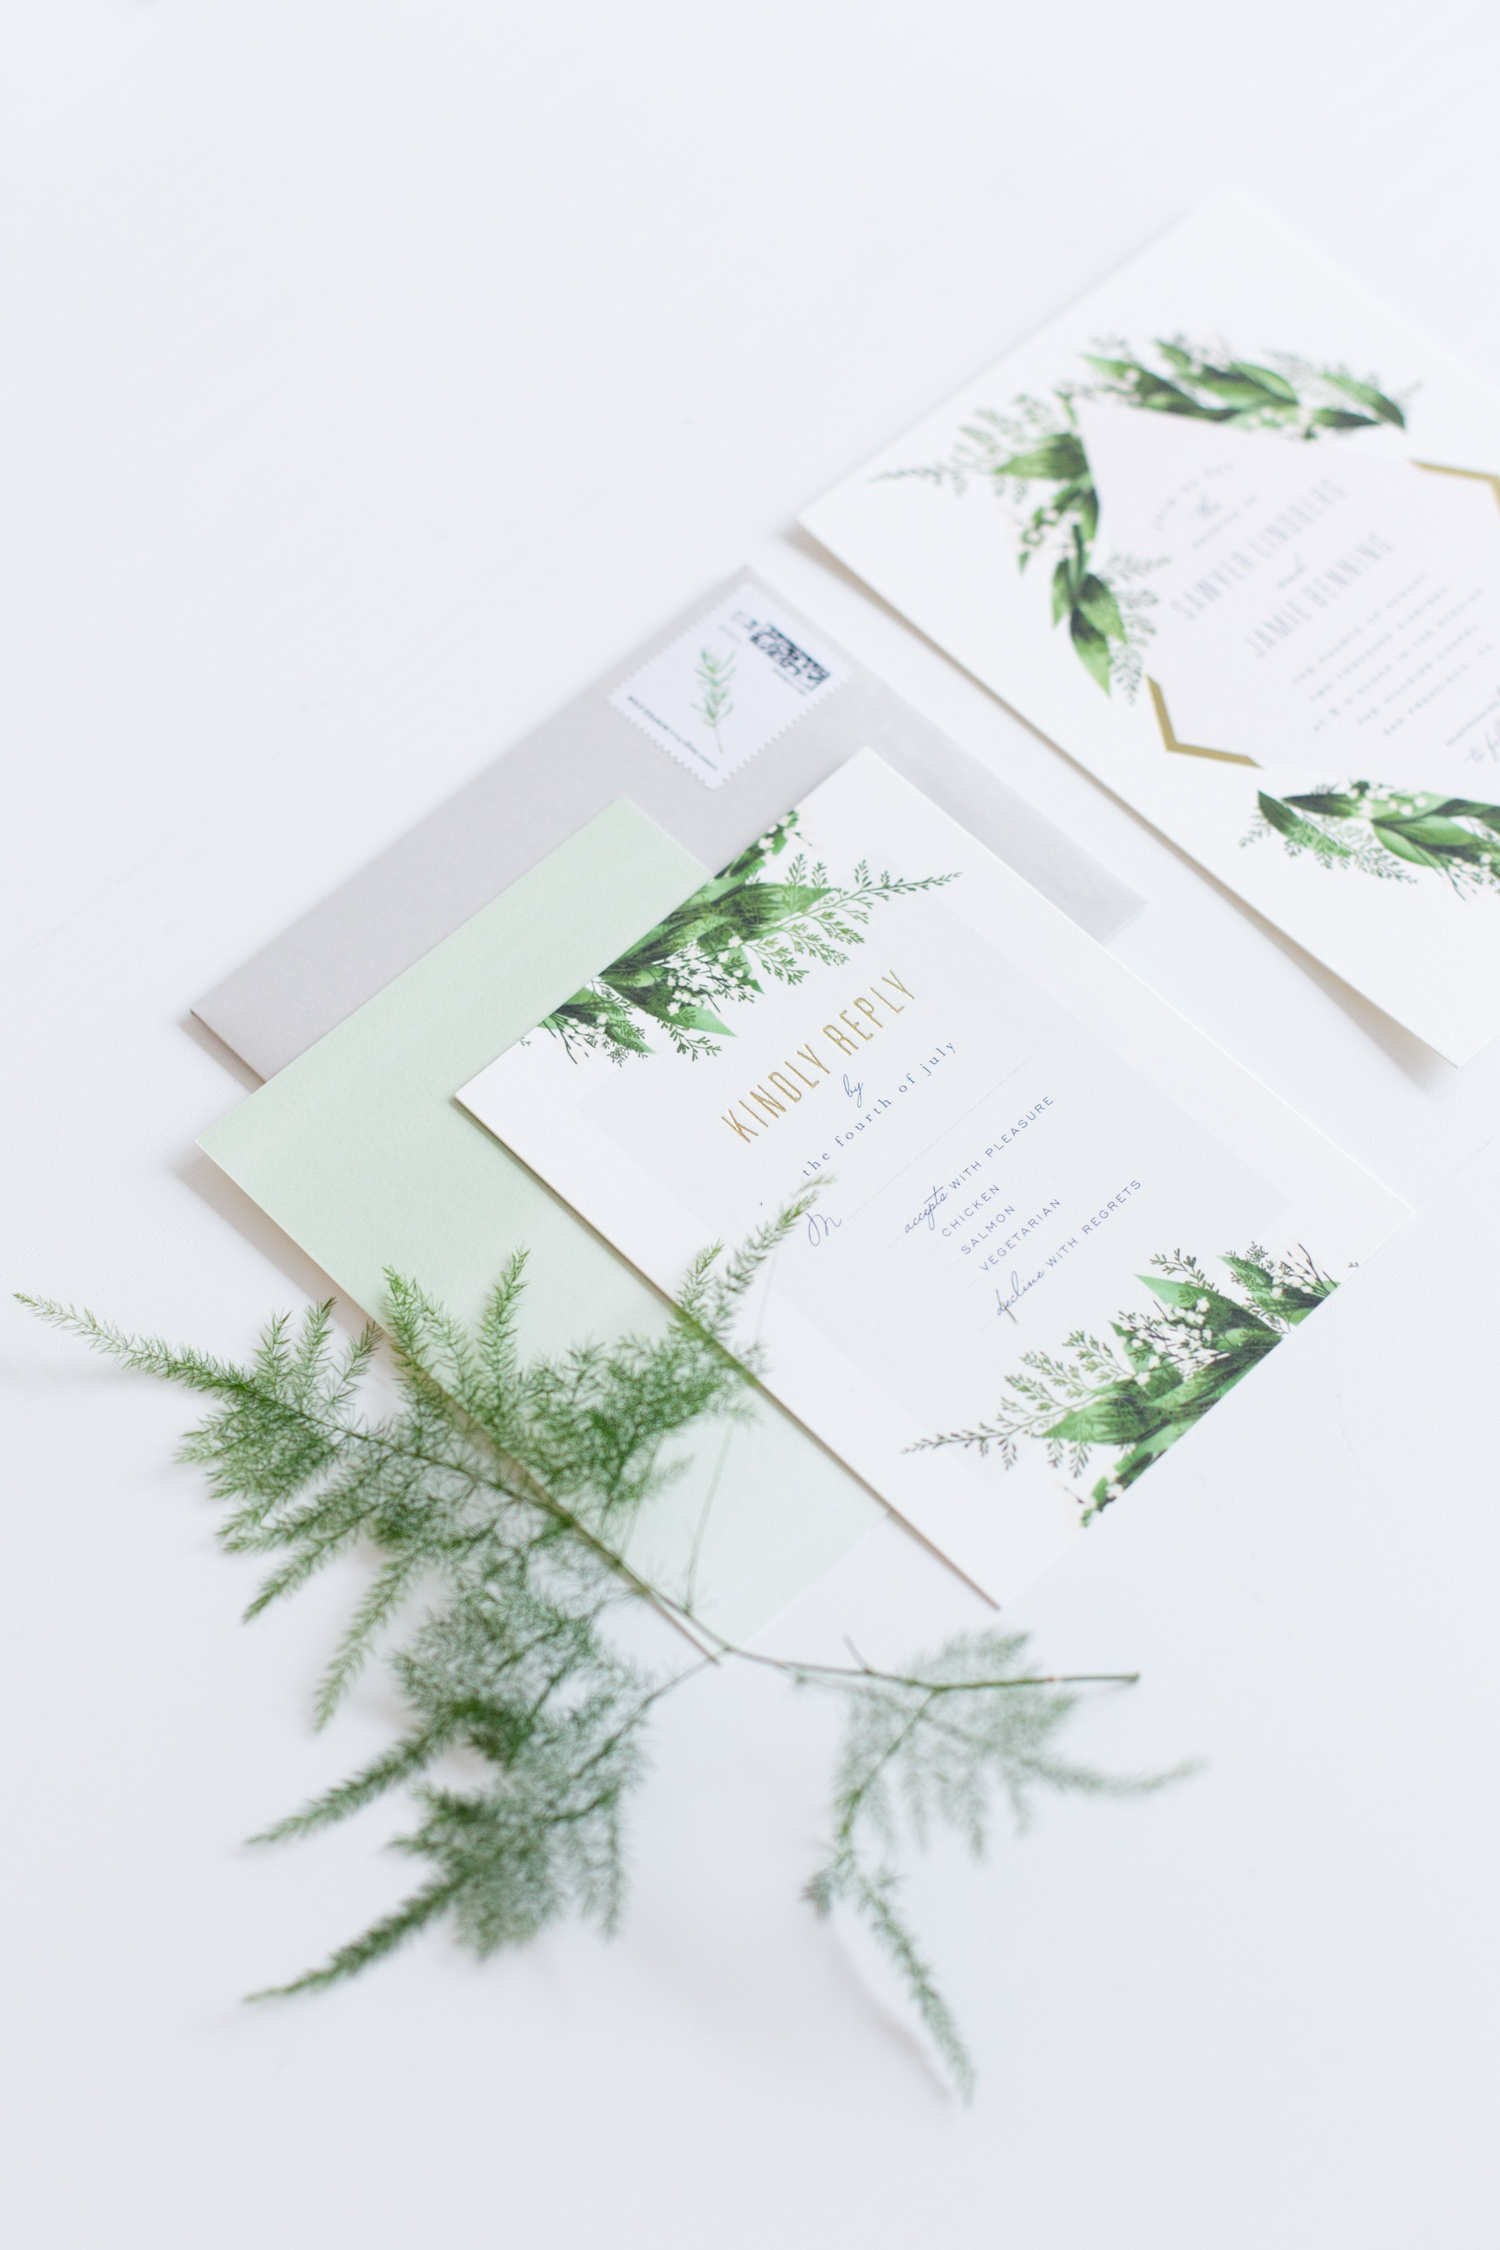 Industrial Chic Botanical Wedding - green and white wedding stationery